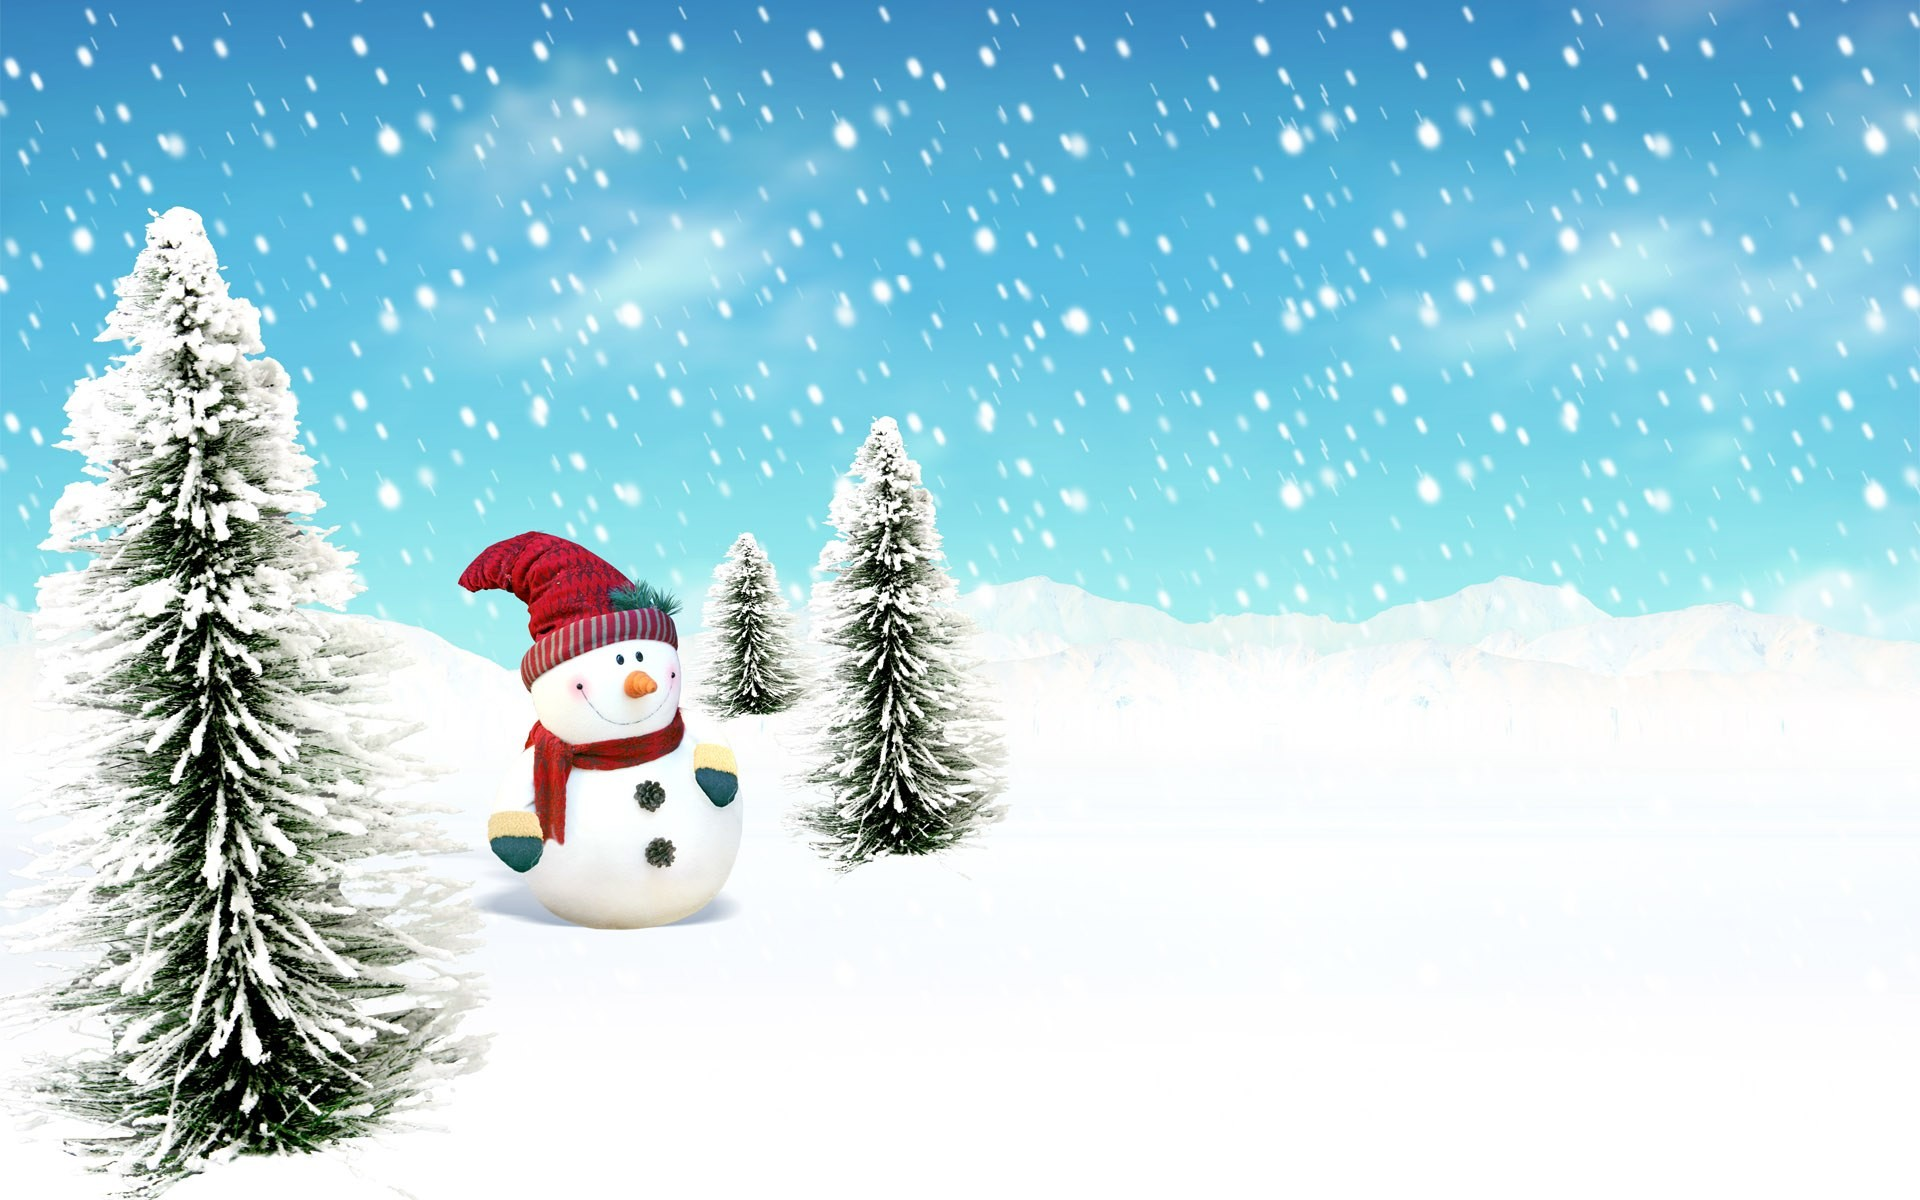 Xmas Desktop Wallpaper and Screensavers 56 images